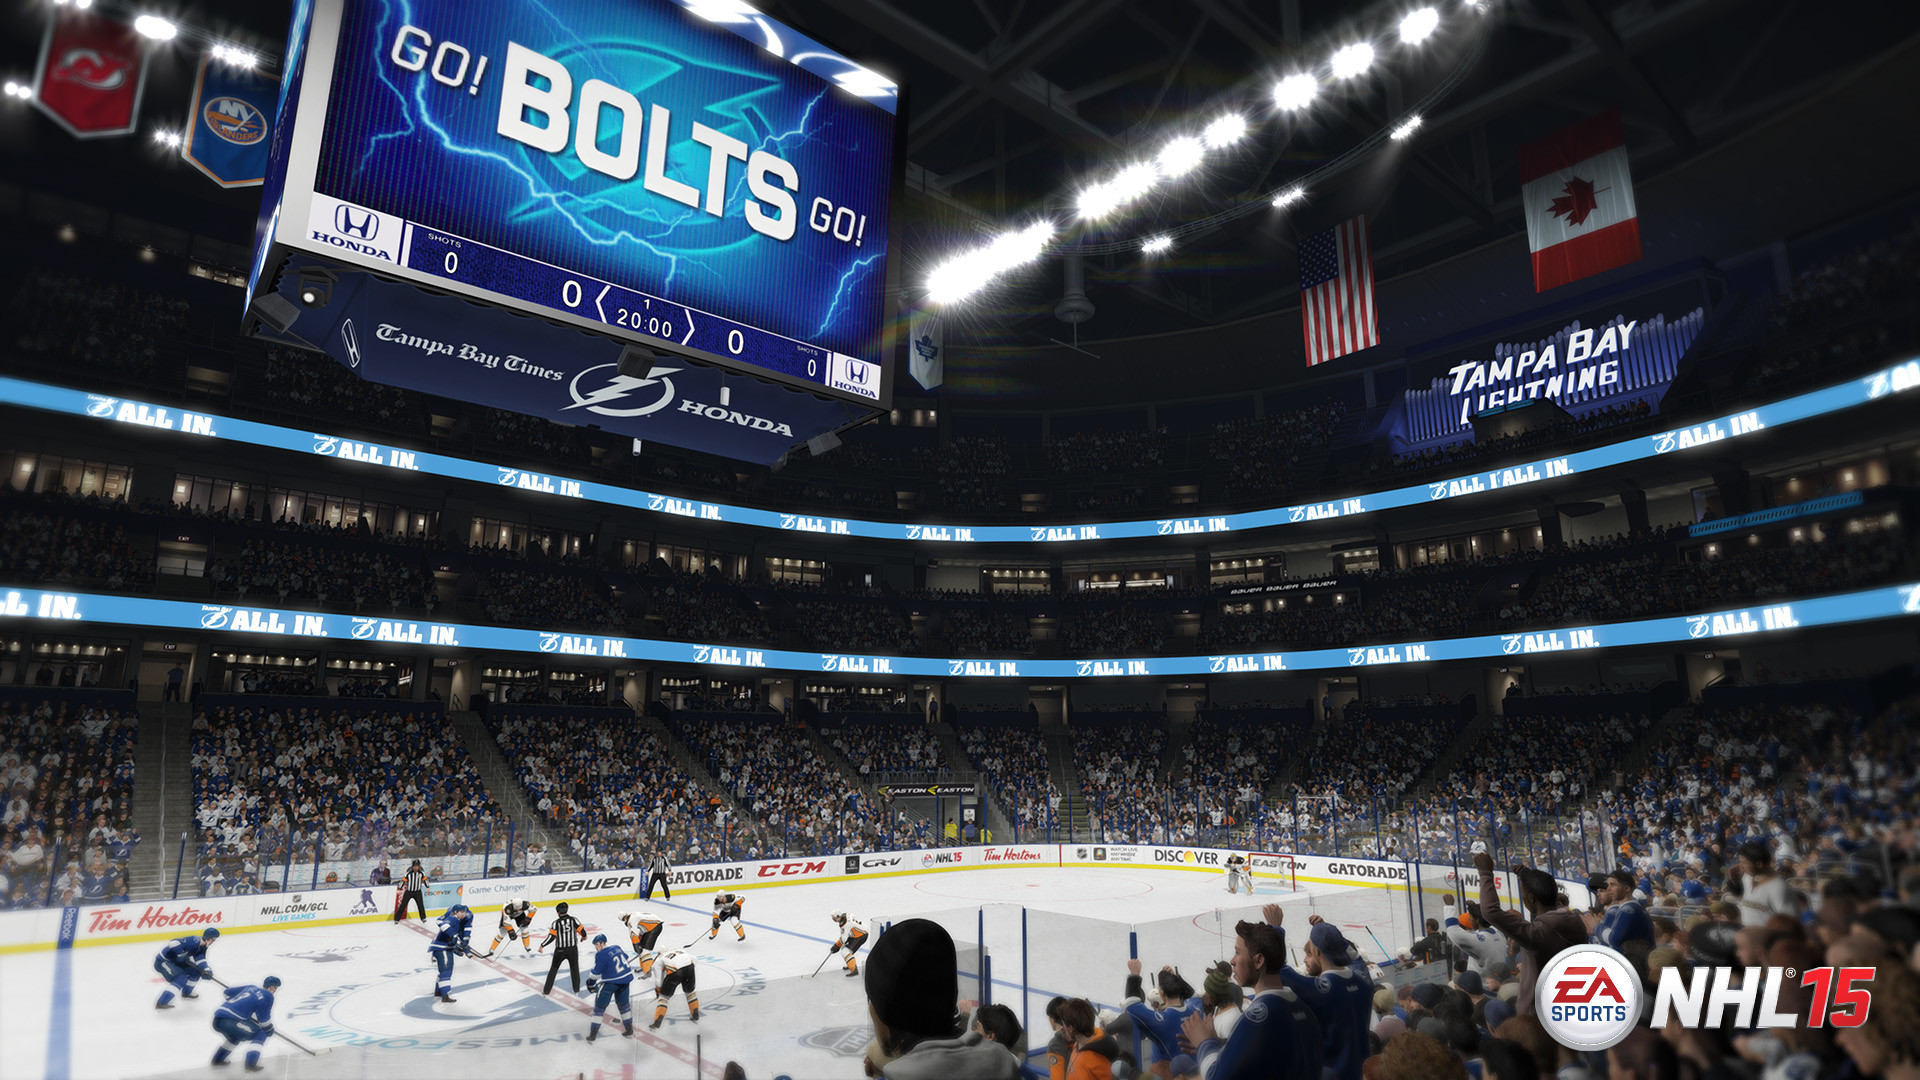 1920x1080 The TB Times Forum in NHL 15 ...